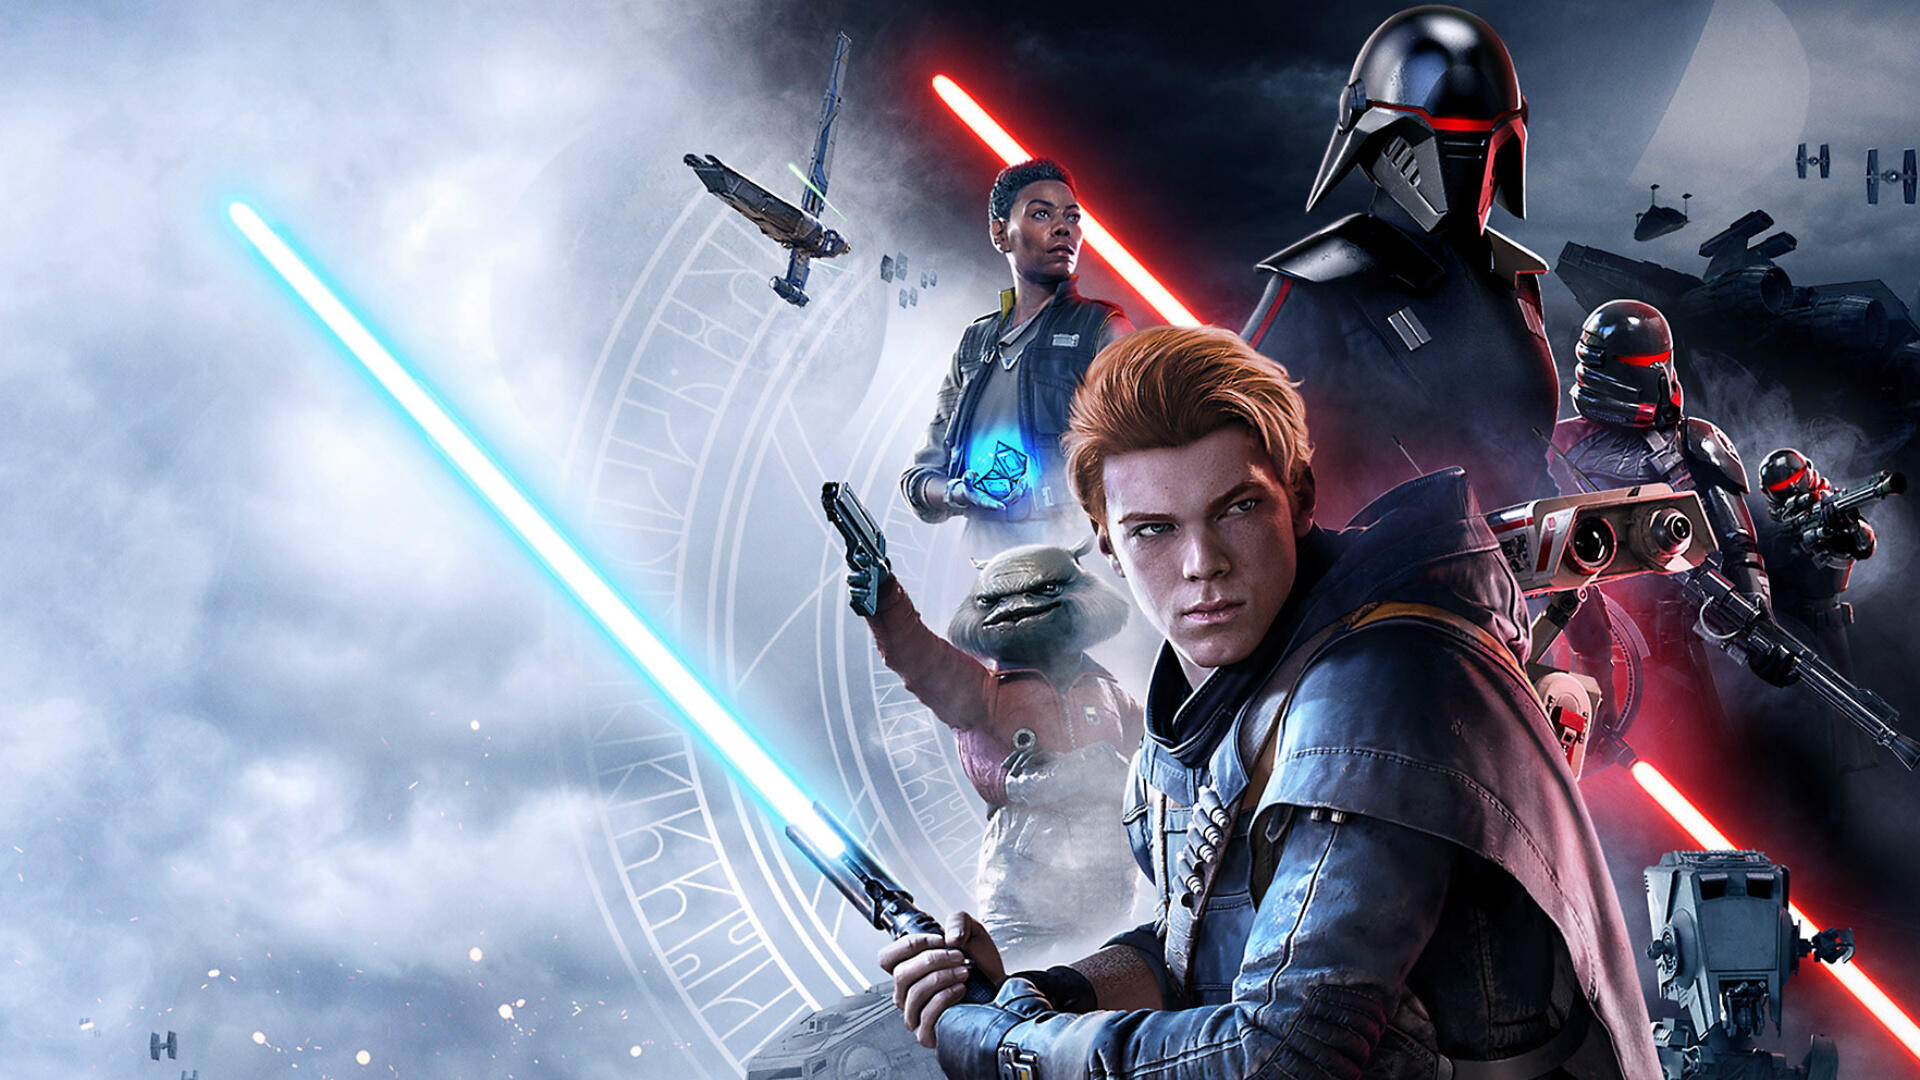 Star Wars Jedi: Fallen Order Panel Discusses the Sights and Dangers Awaiting Star Wars' Newest Jedi